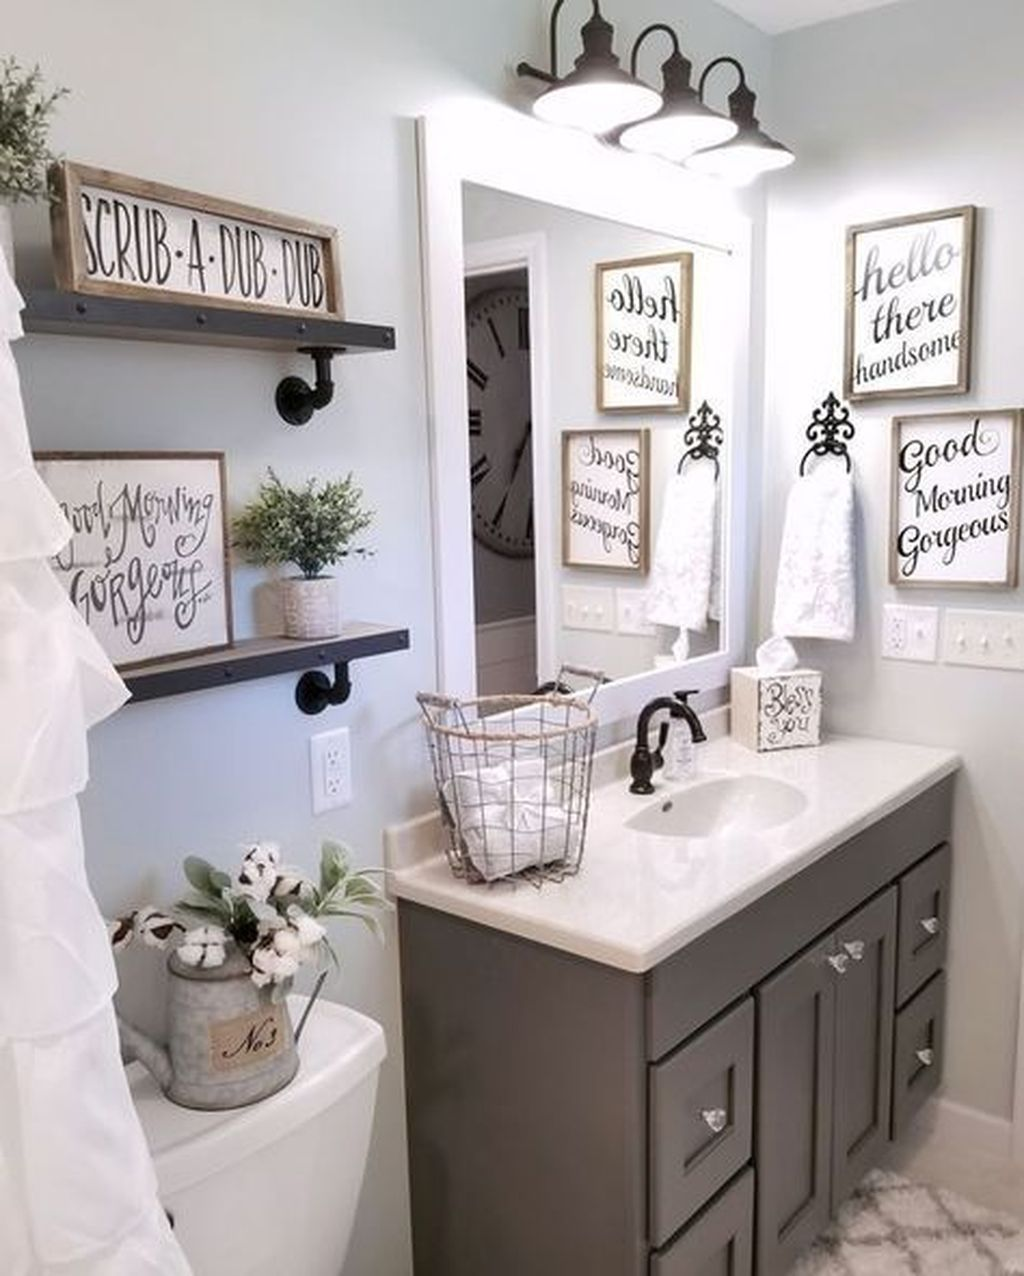 6 Wonderful Diy Rustic Bathroom Decor Ideas You Should Have